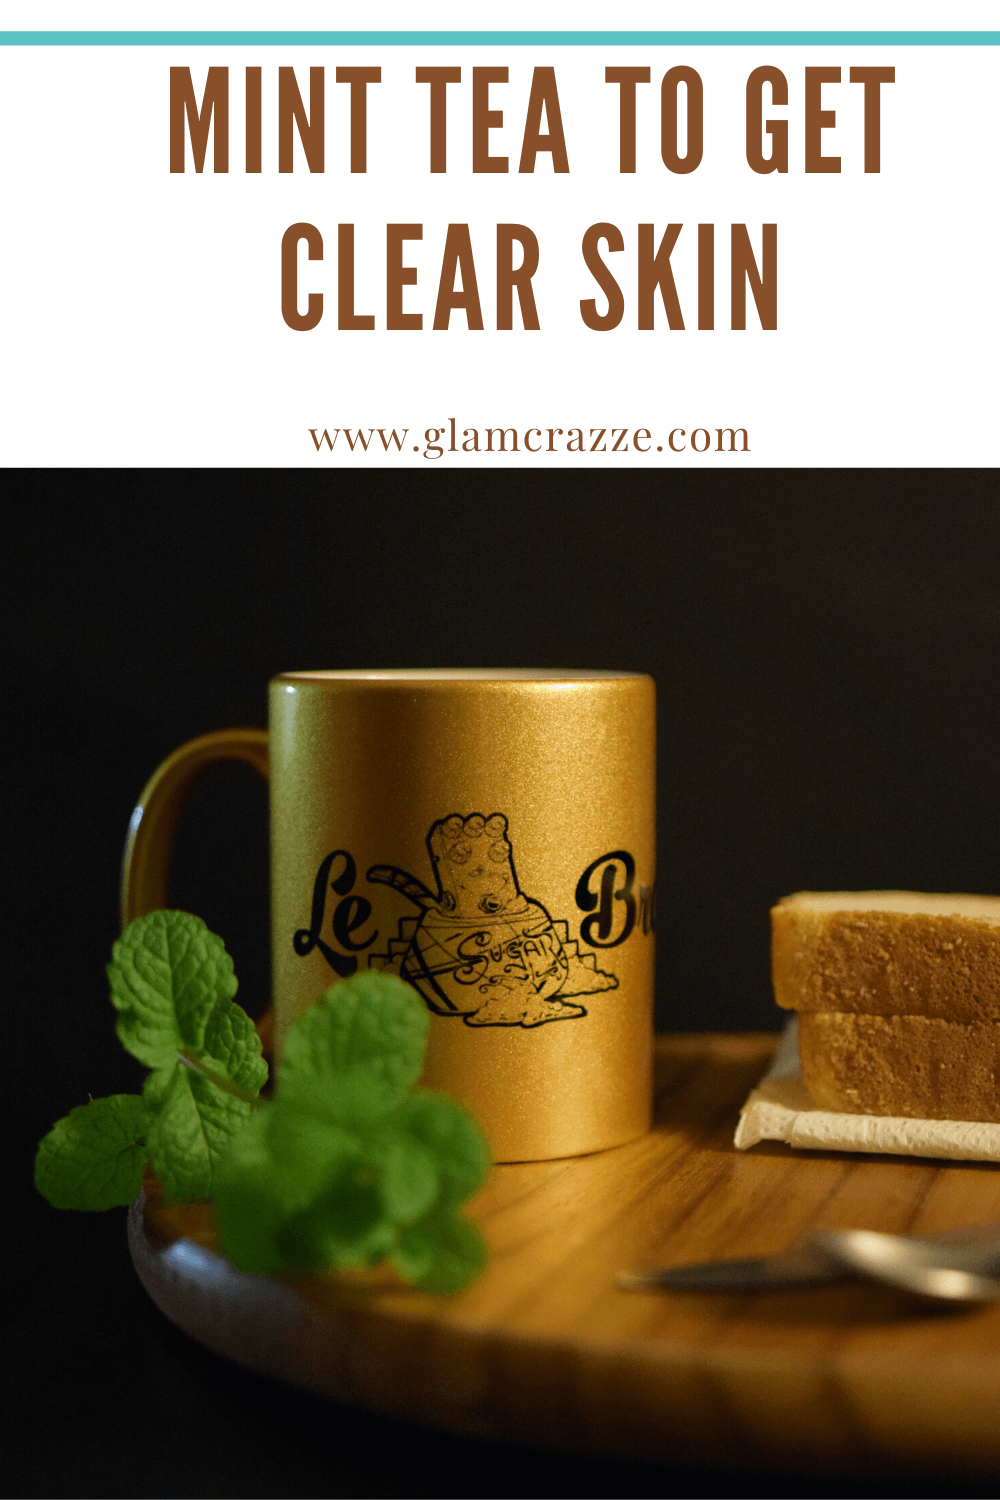 Mint tea to get clear skin at home remedies